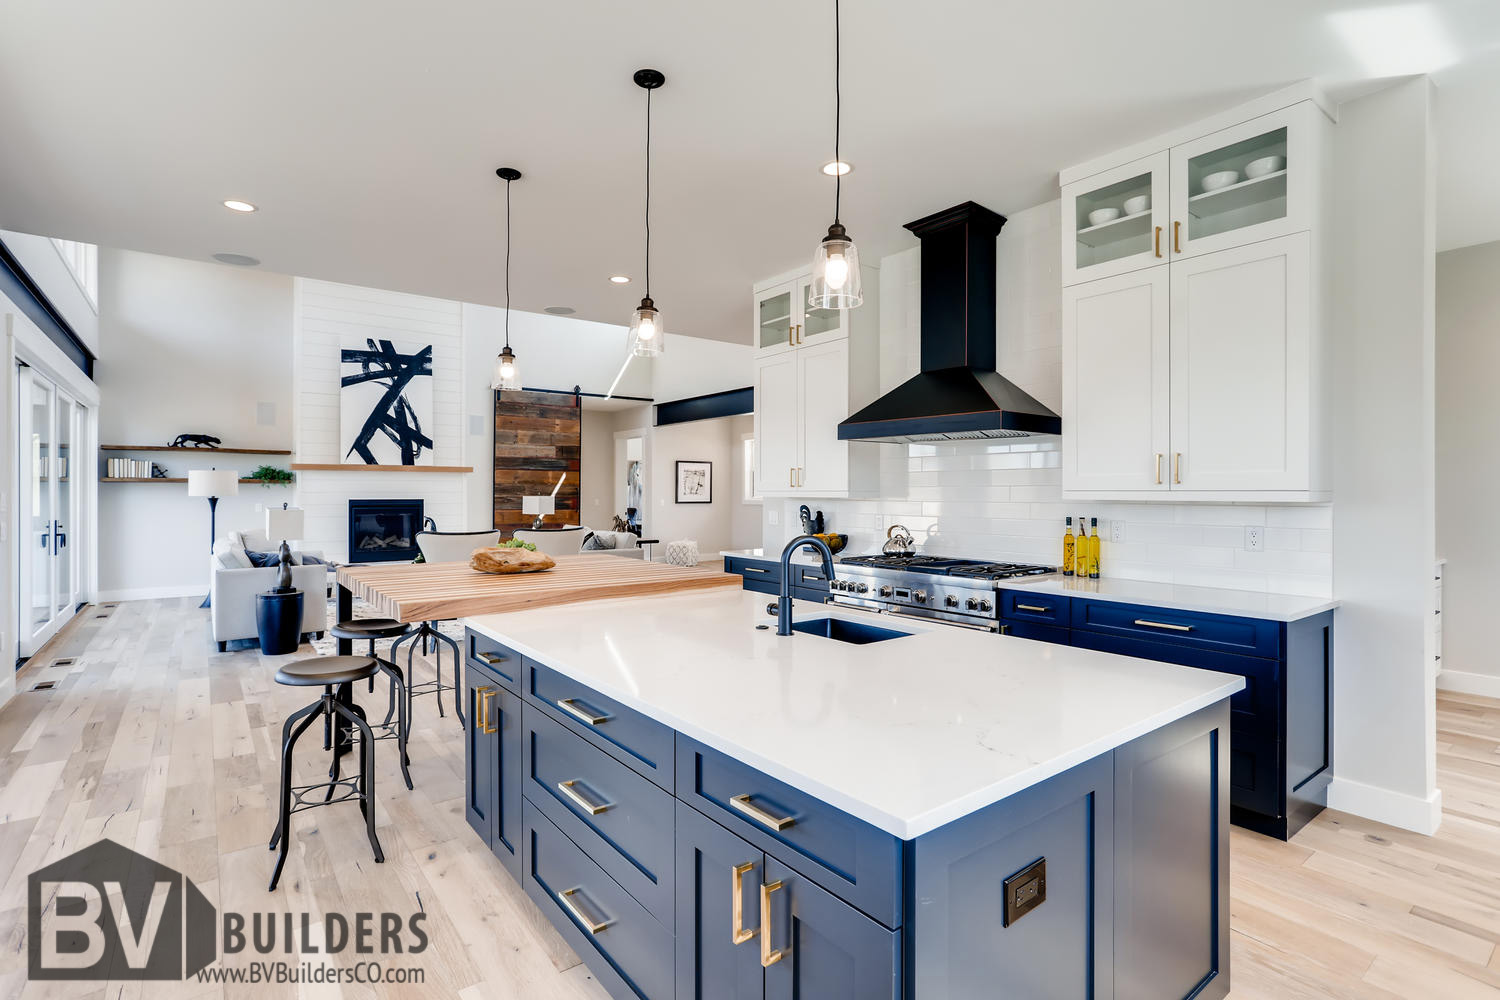 Modern farmhouse kitchen with dark blue cabinets, white subway tile backsplash, butcher block bar and Thermador range